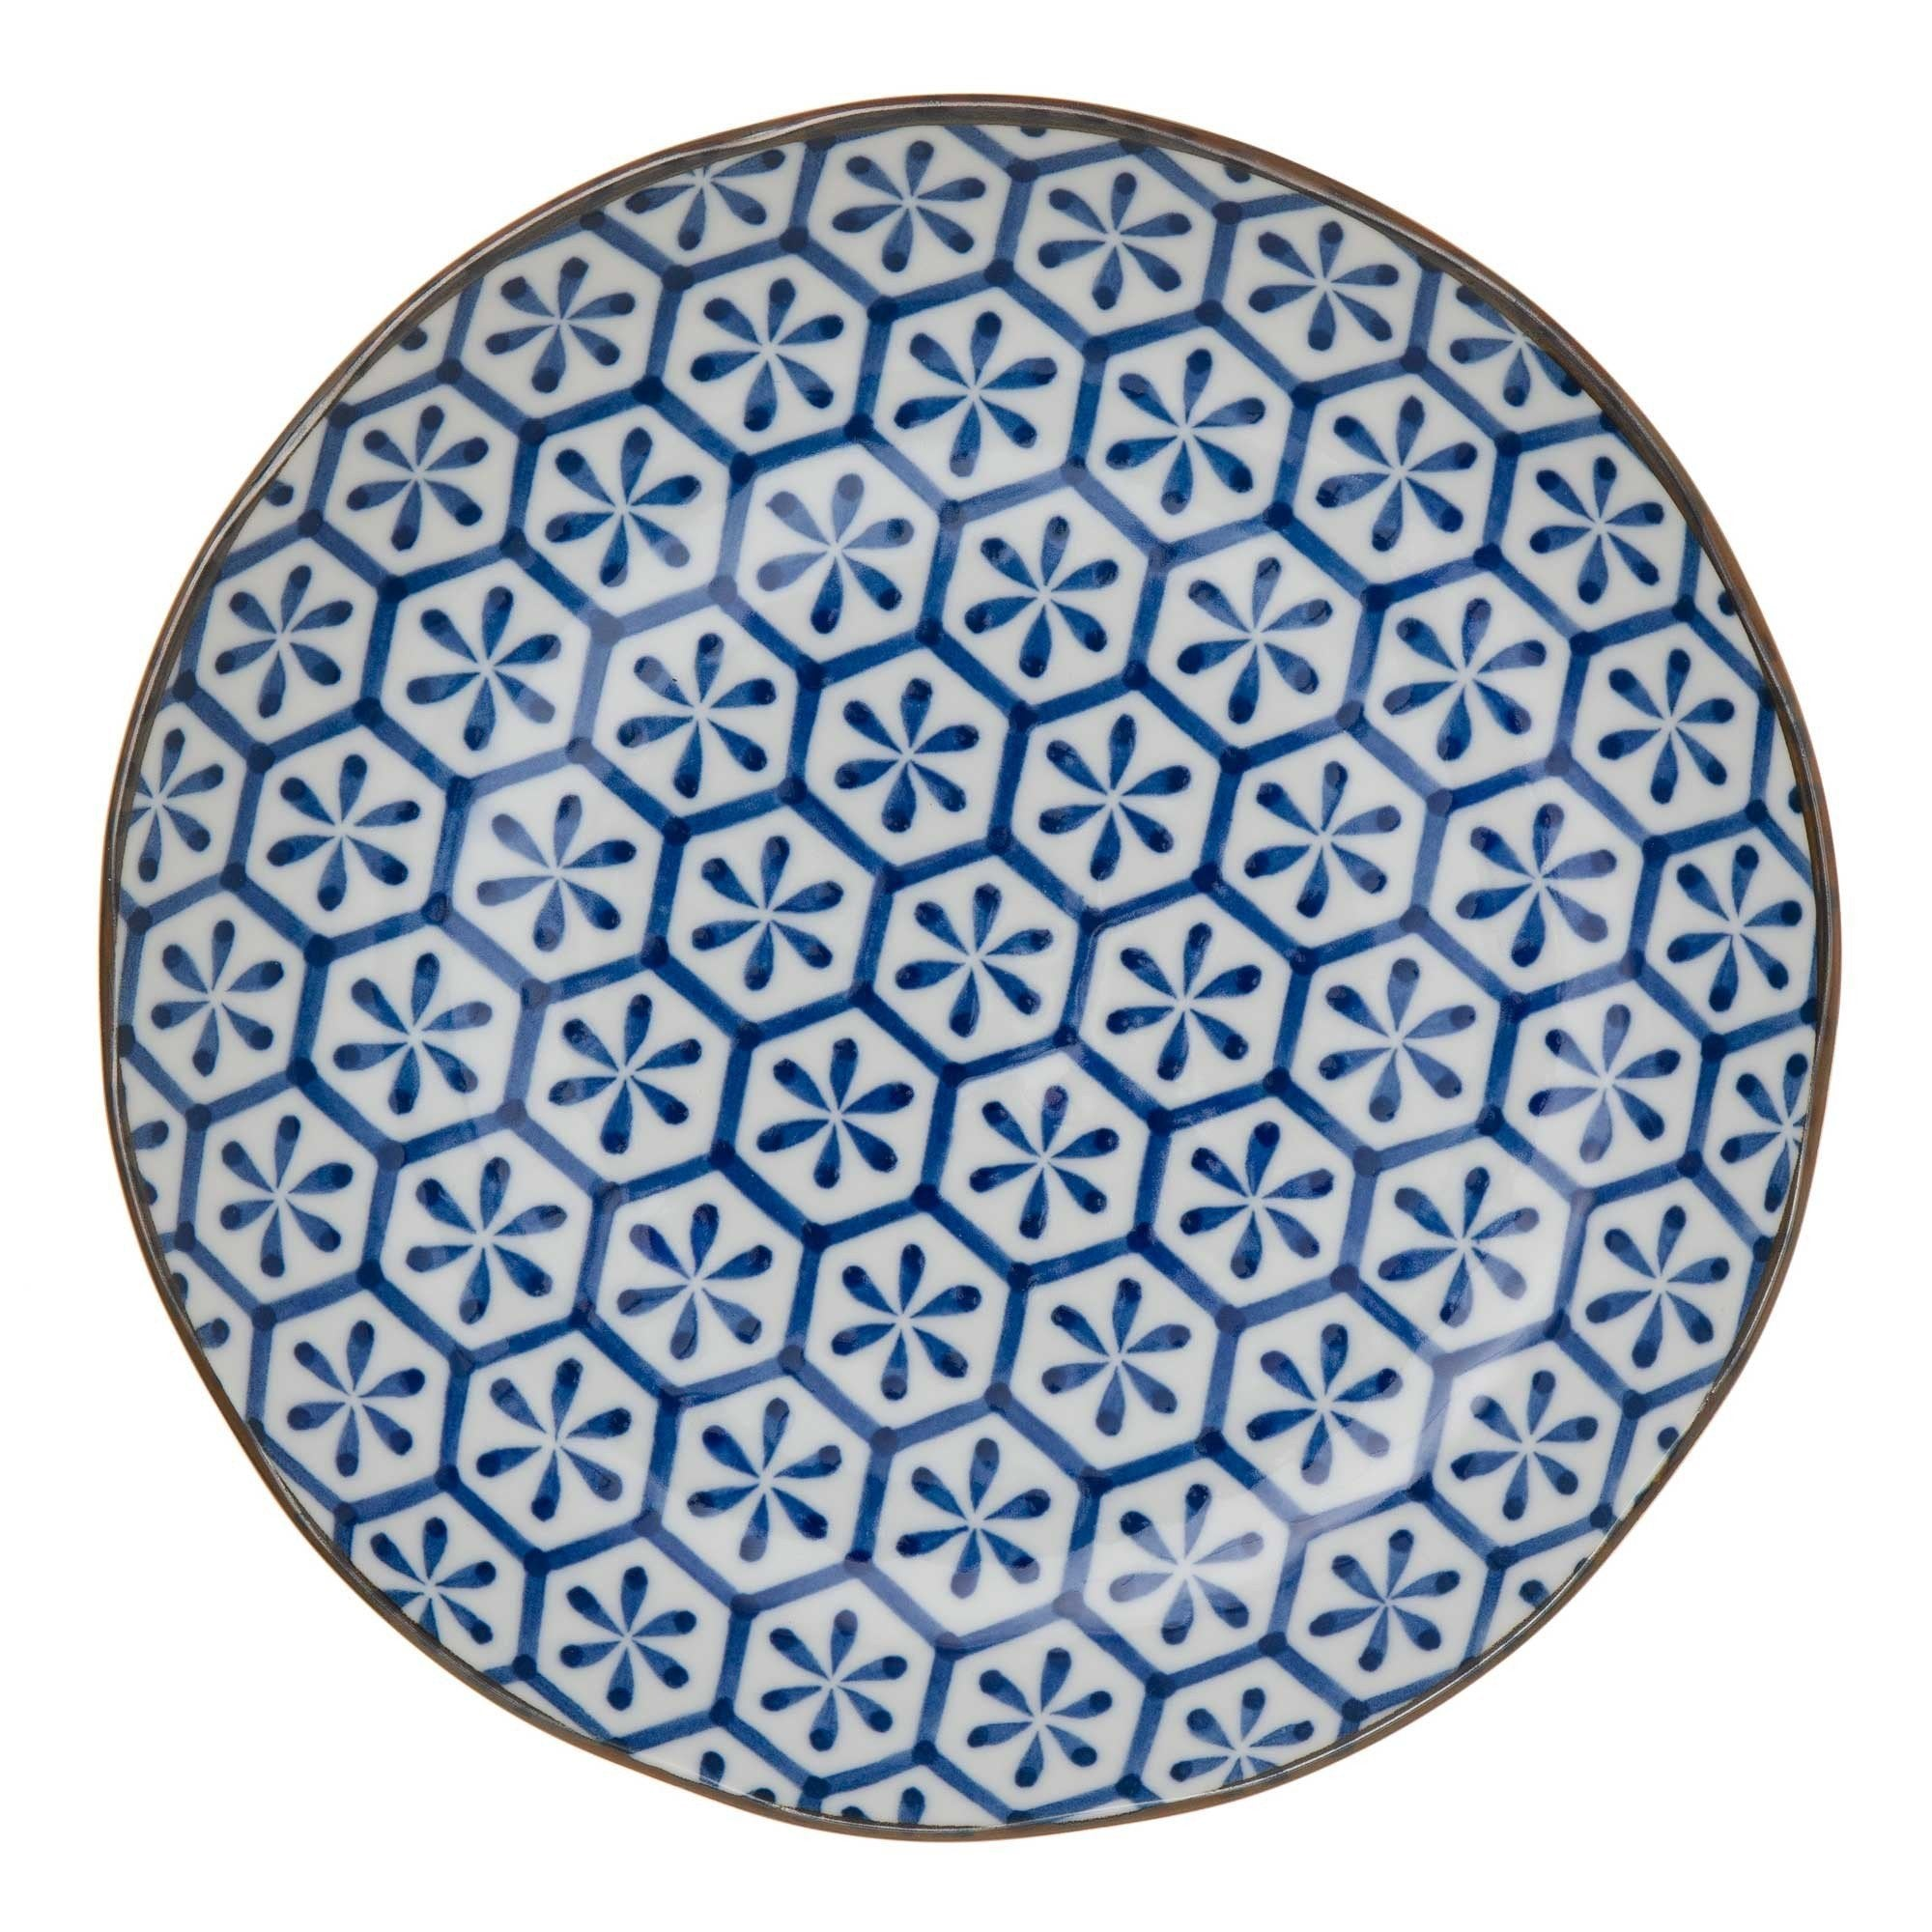 Onuma plate, white & dark blue, 100% ceramic